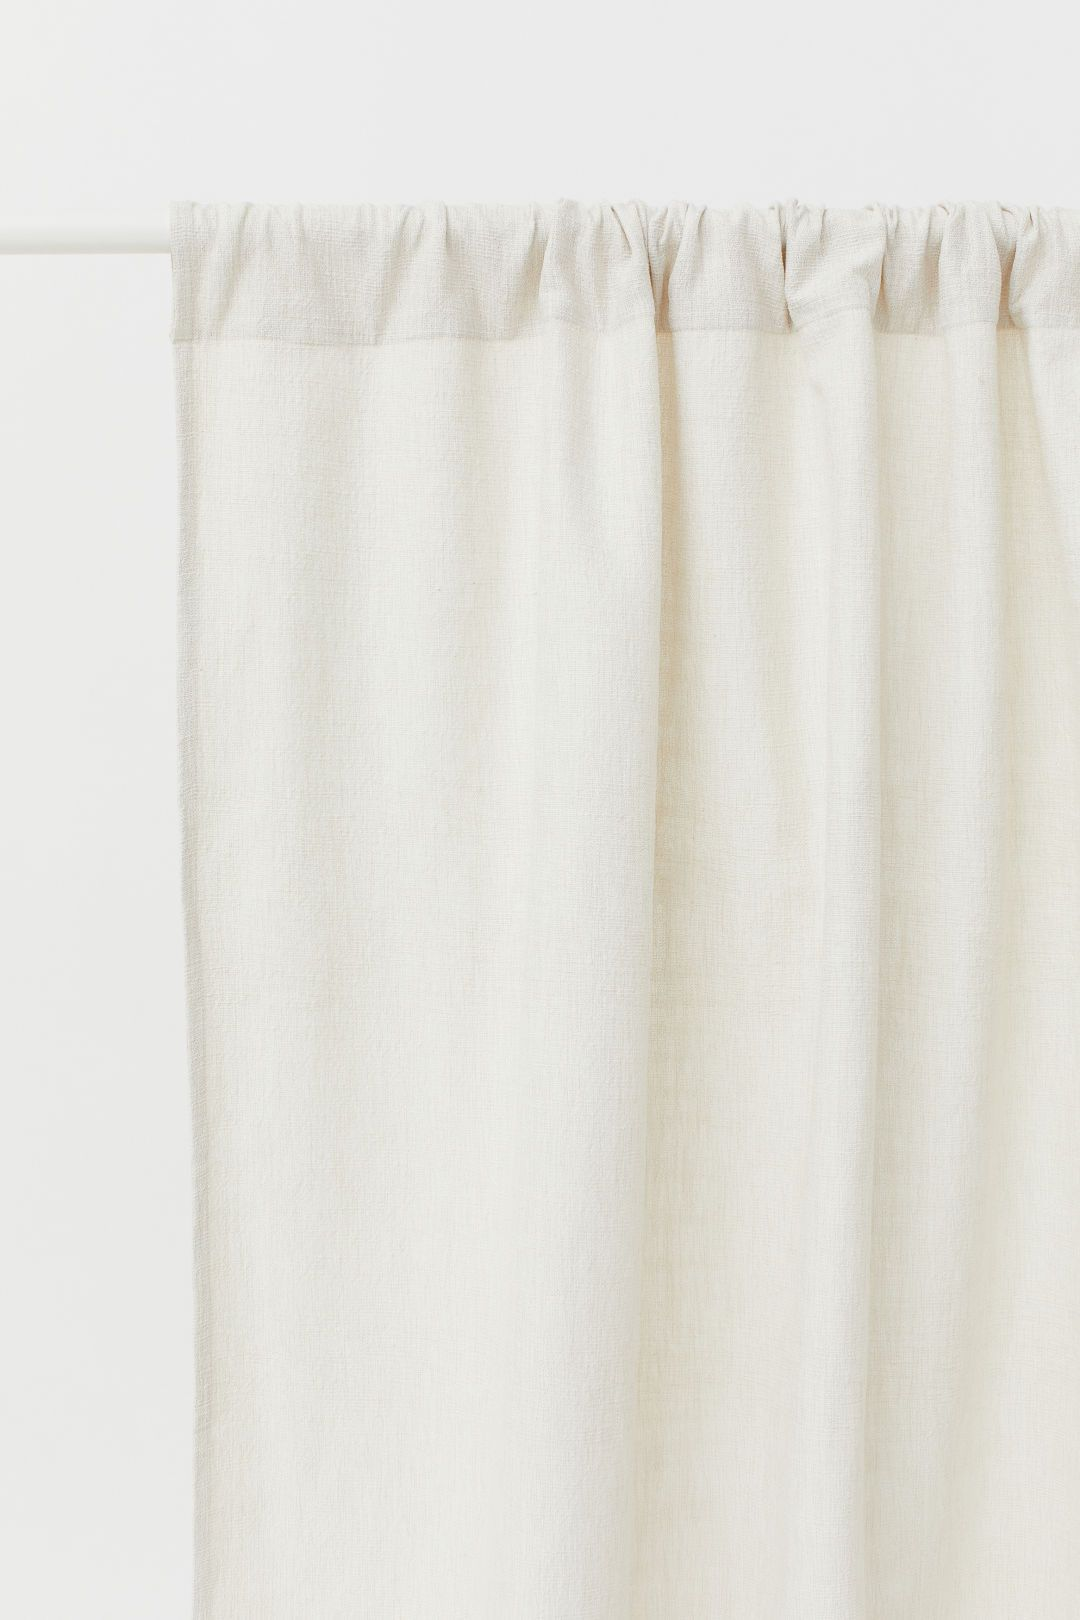 2 Pack Gardinlangd In 2020 Panel Curtains Curtains White Paneling